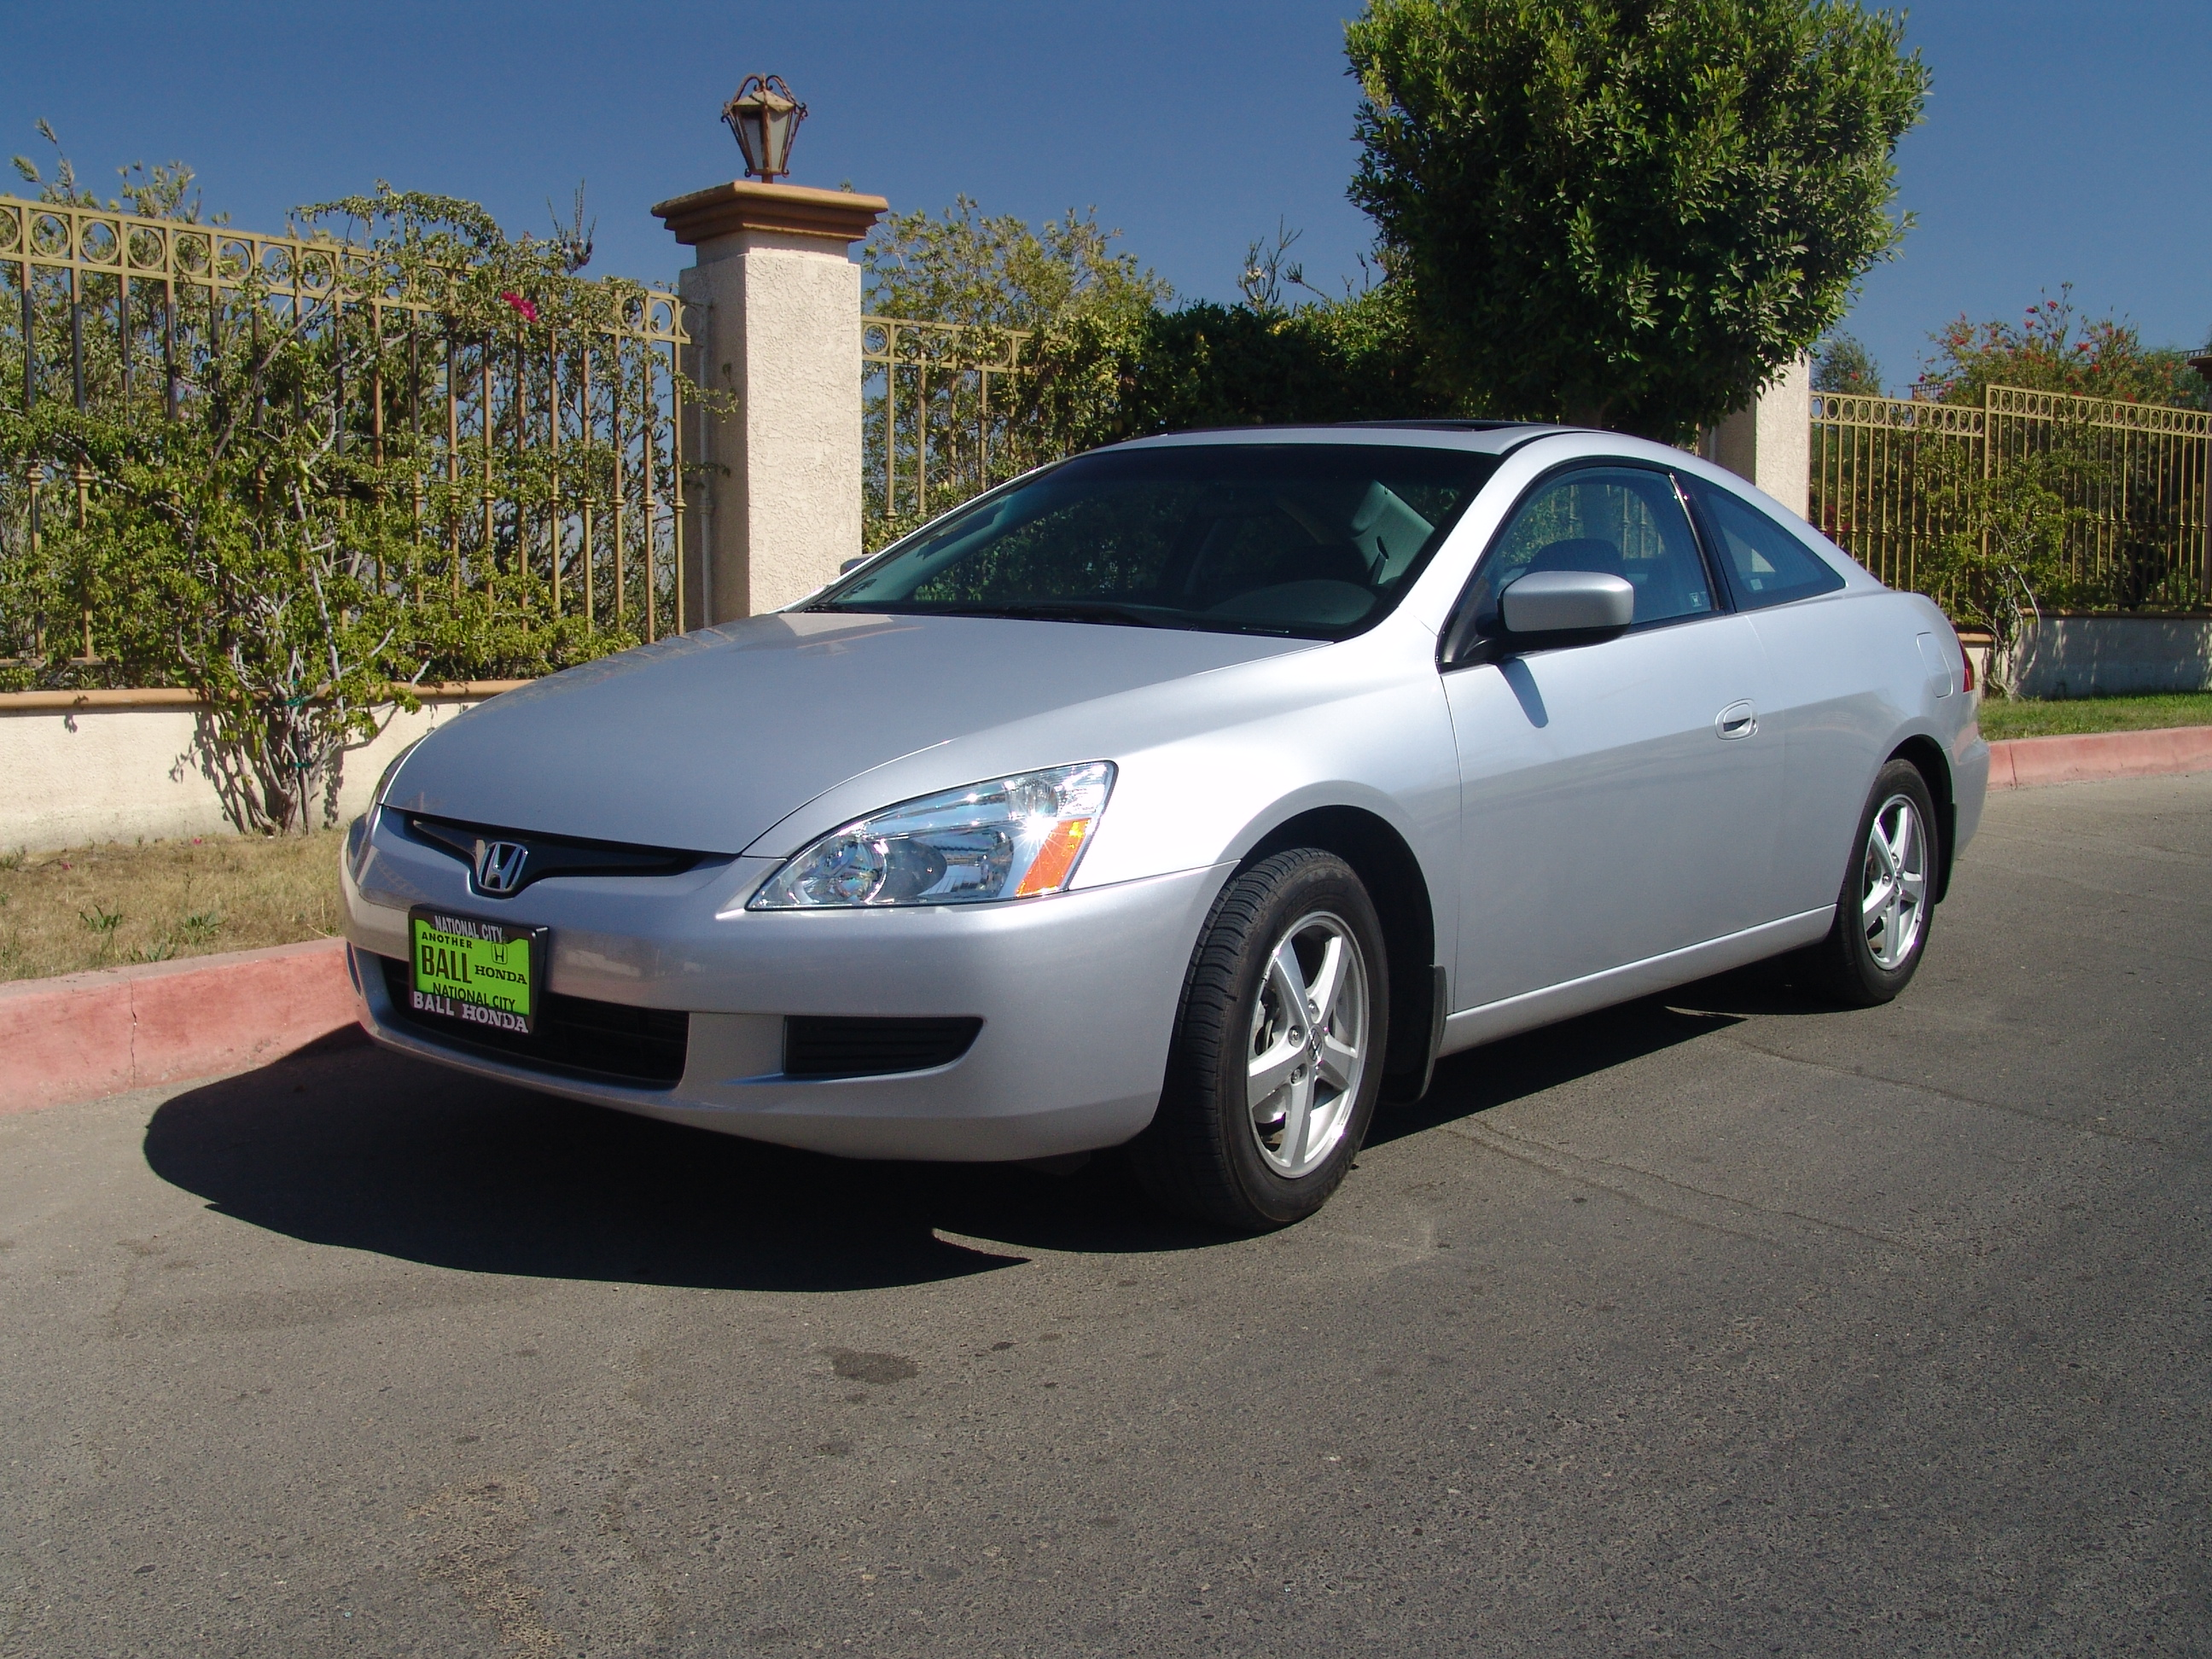 Honda Accord Vii Coupe 2006 Images #15